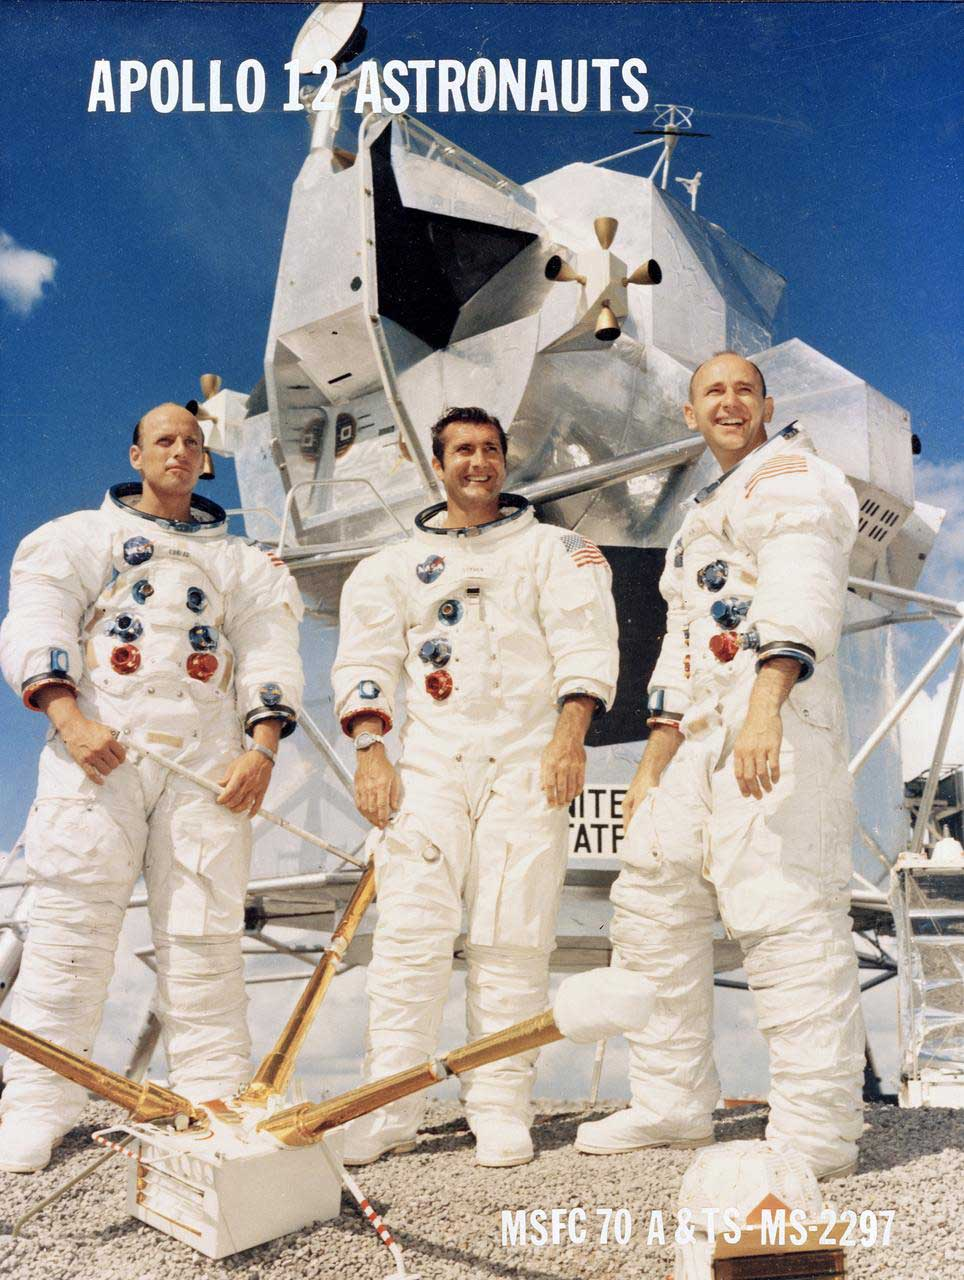 The crew of the Apollo 12 spaceflight, pictured left to right: Charles Conrad Jr., Richard F. Gordon Jr. and Alan L. Bean